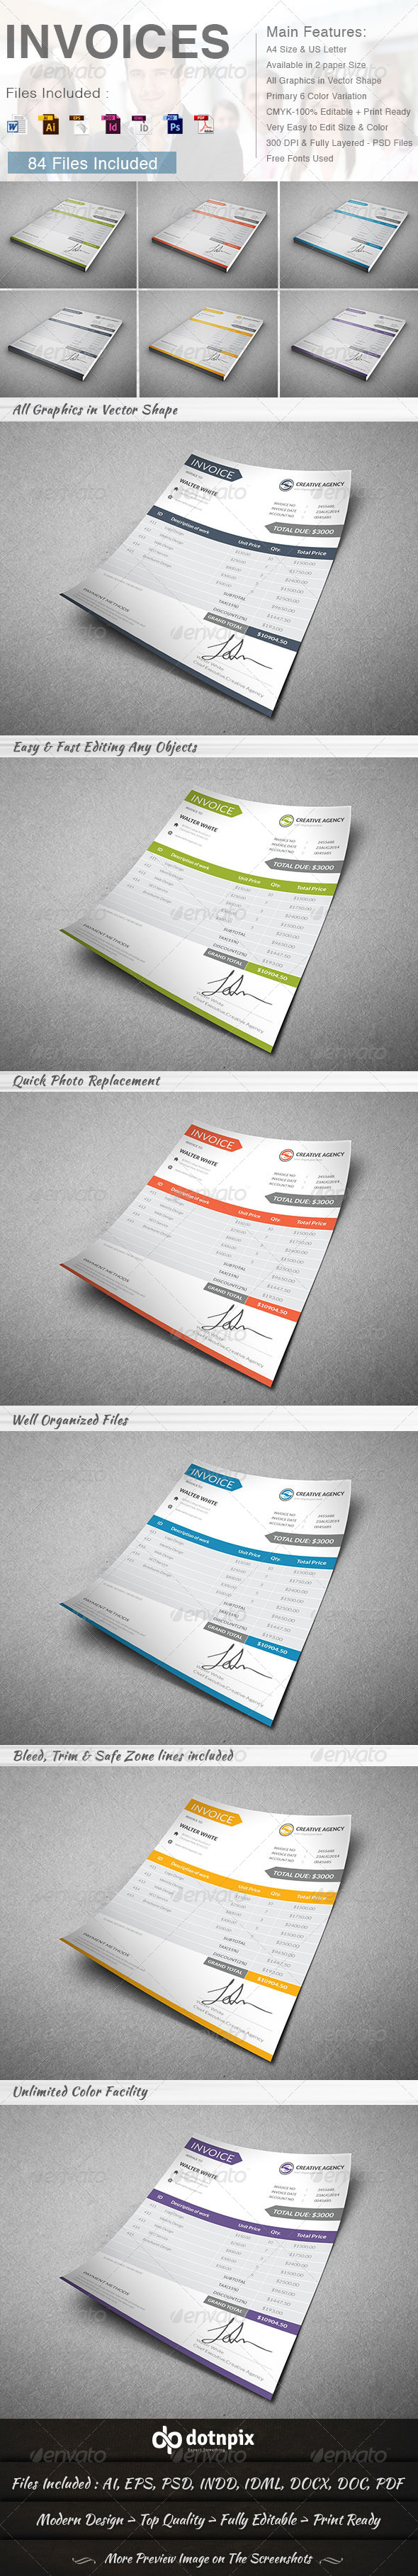 GraphicRiver Invoices 6 in 1 8719151